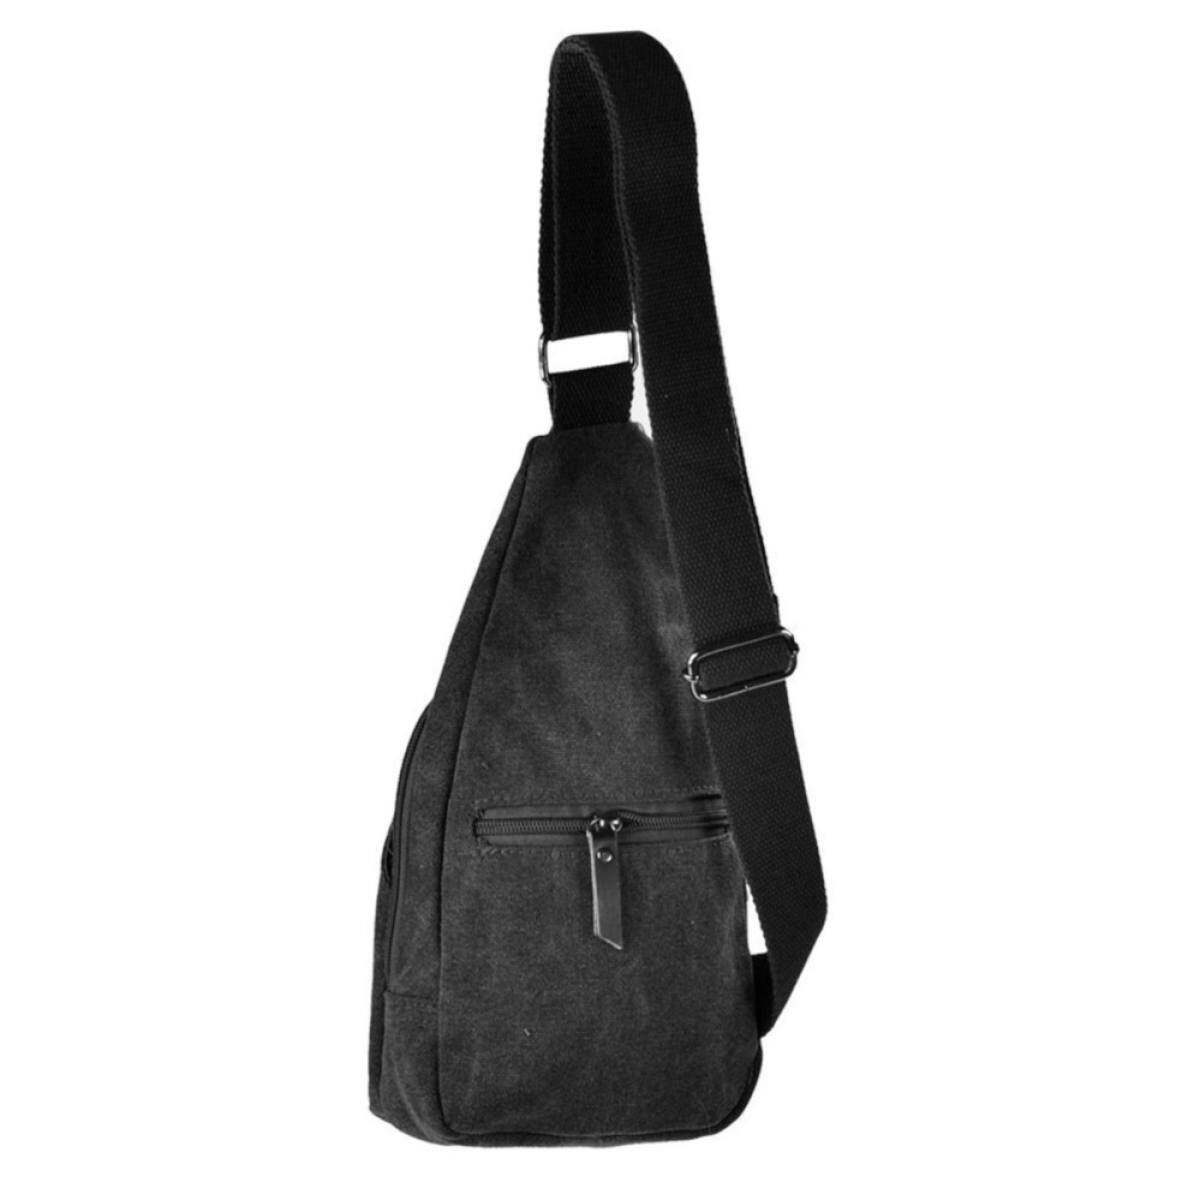 8e267cb181 Sling Bags for Men for sale - Cross Bags for Men online brands ...